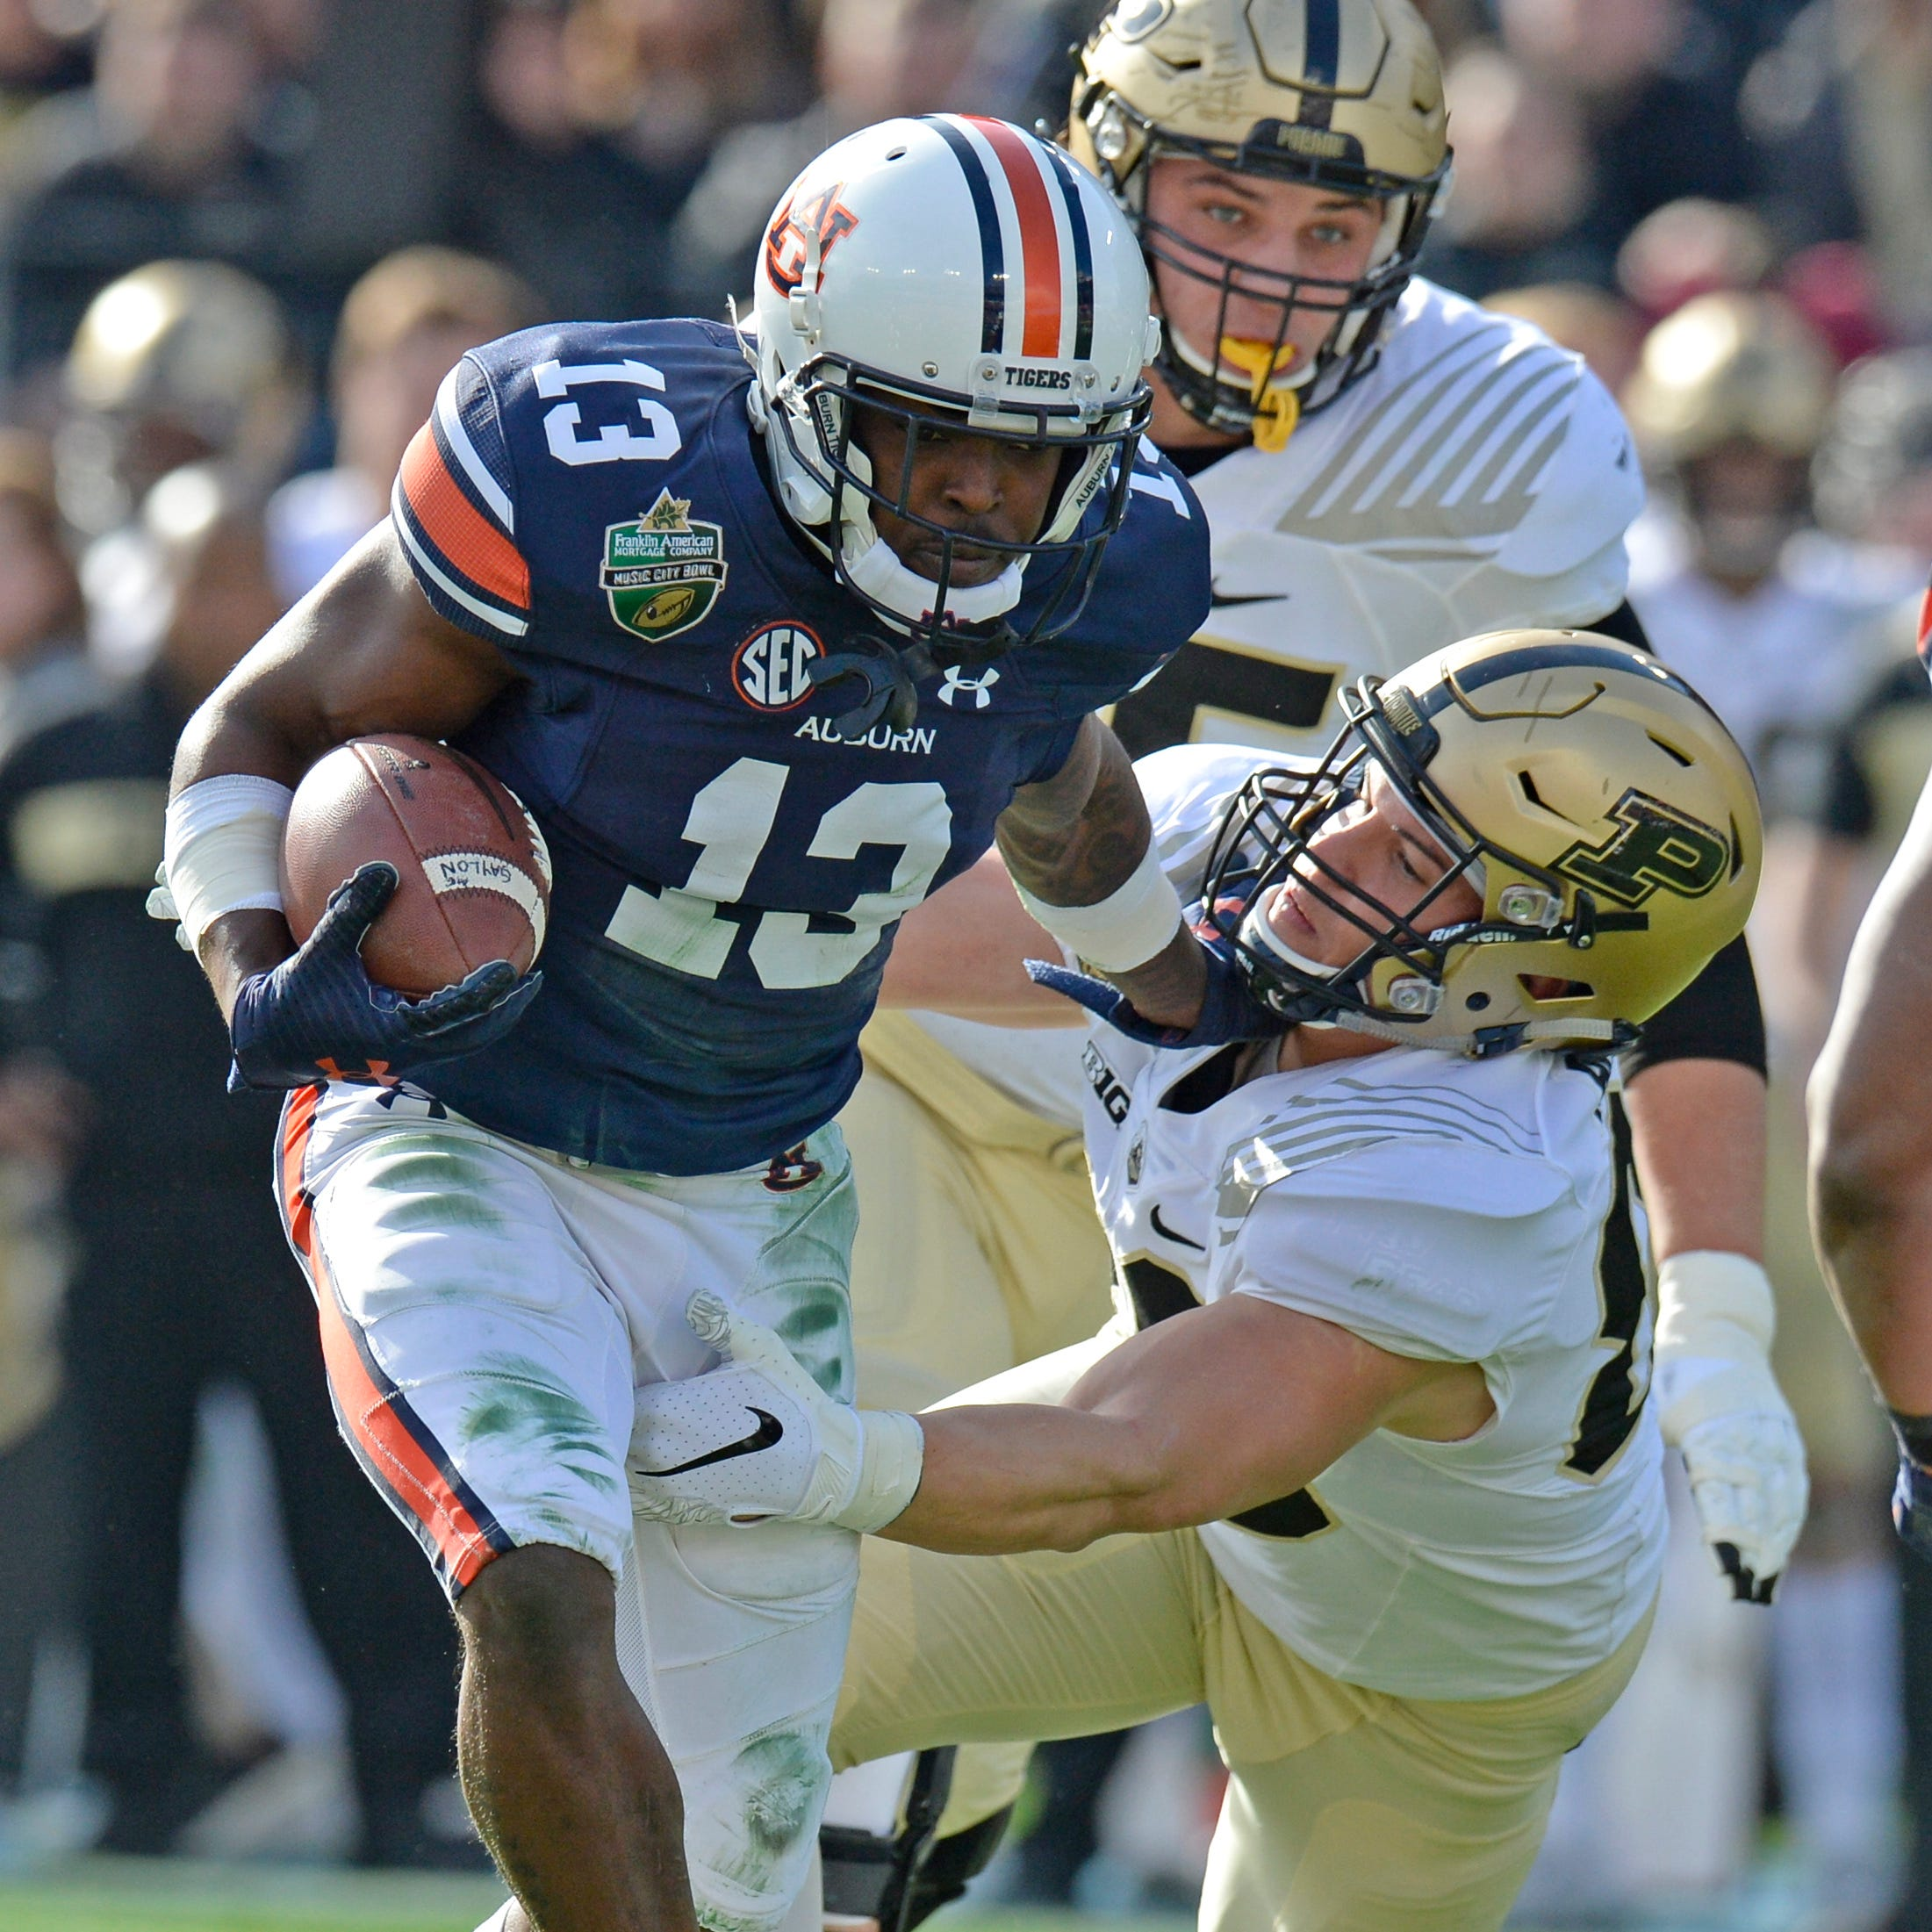 Music City Bowl: How Auburn Tigers crushed Purdue Boilermakers 63-14